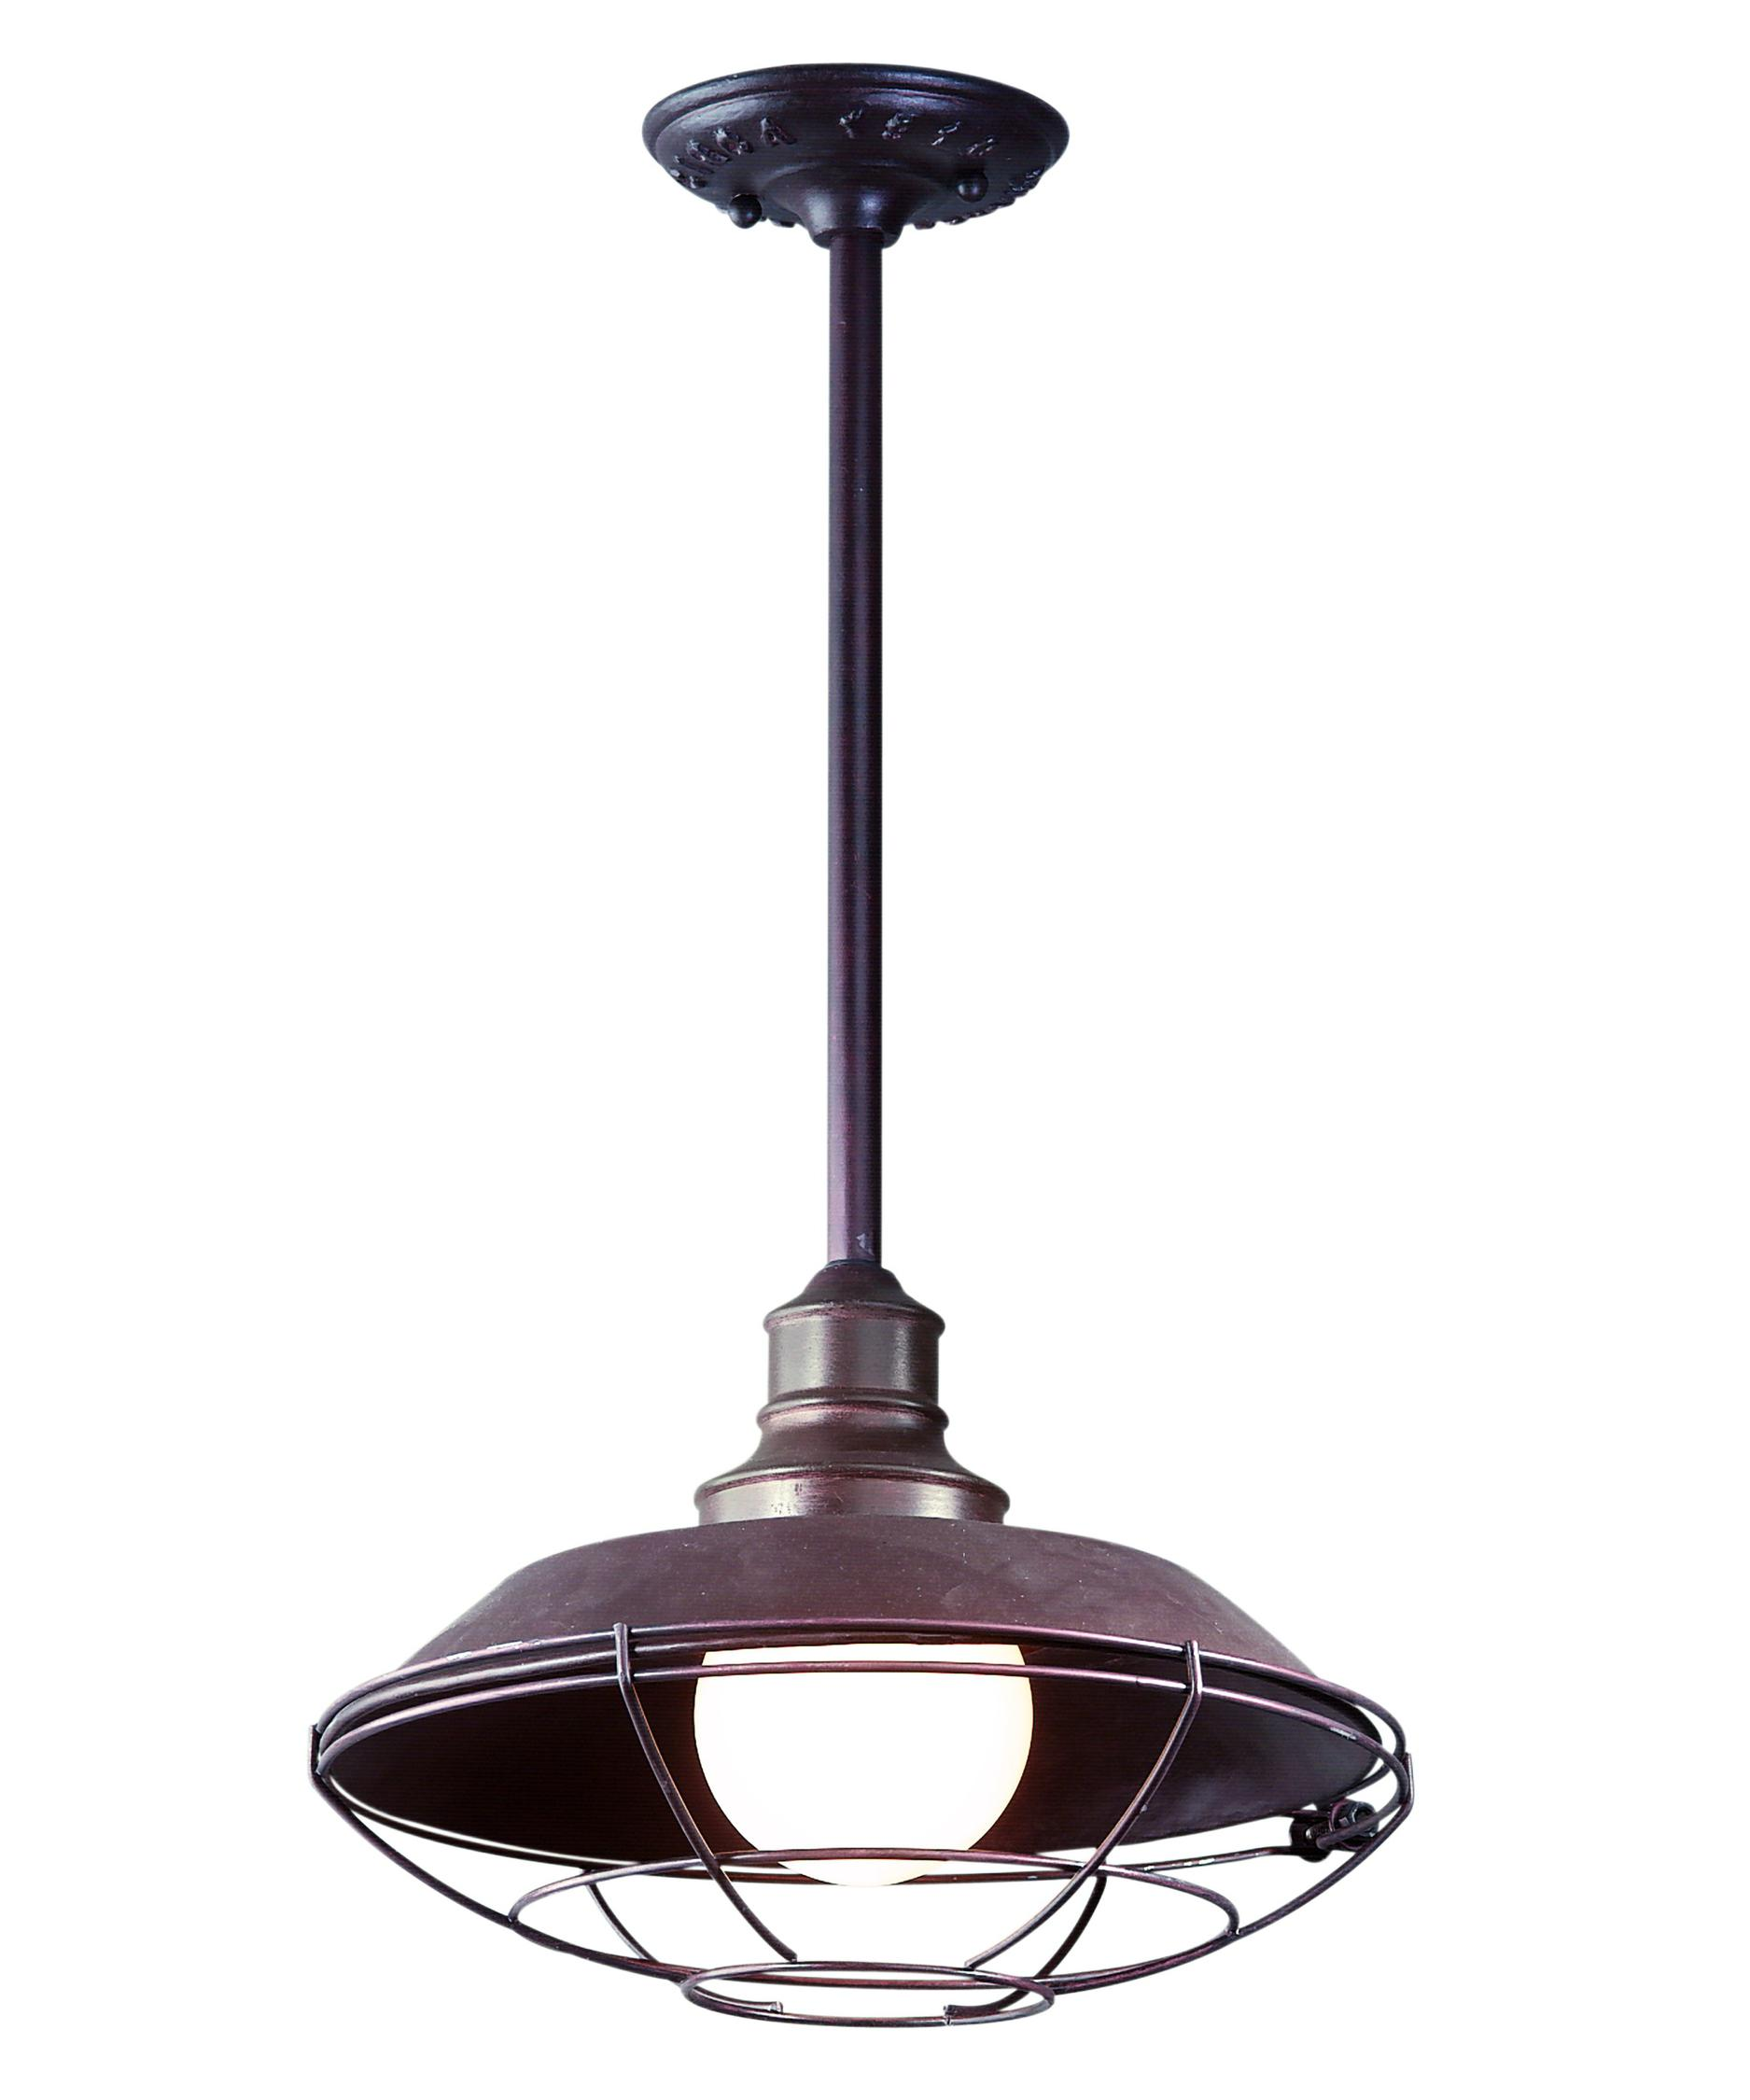 Troy Lighting F9273 Circa 1910 12 Inch Wide 1 Light Outdoor Hanging Lantern  | Capitol Lighting 1 800lighting.com